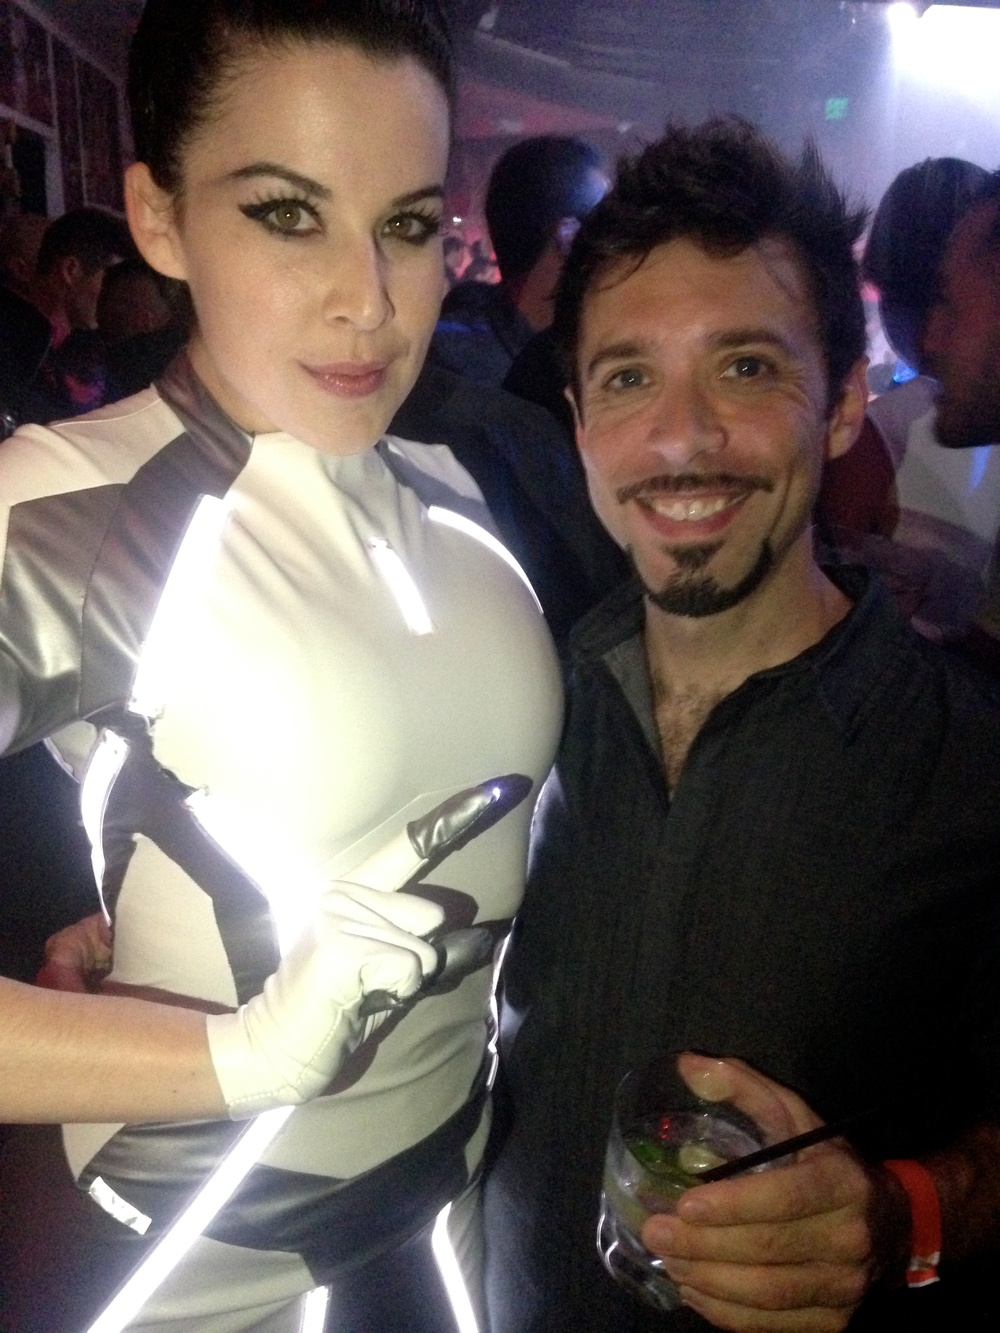 The fantastic Miss Kit Quinn in her Siren fromTron cosplay with Adam Beane.